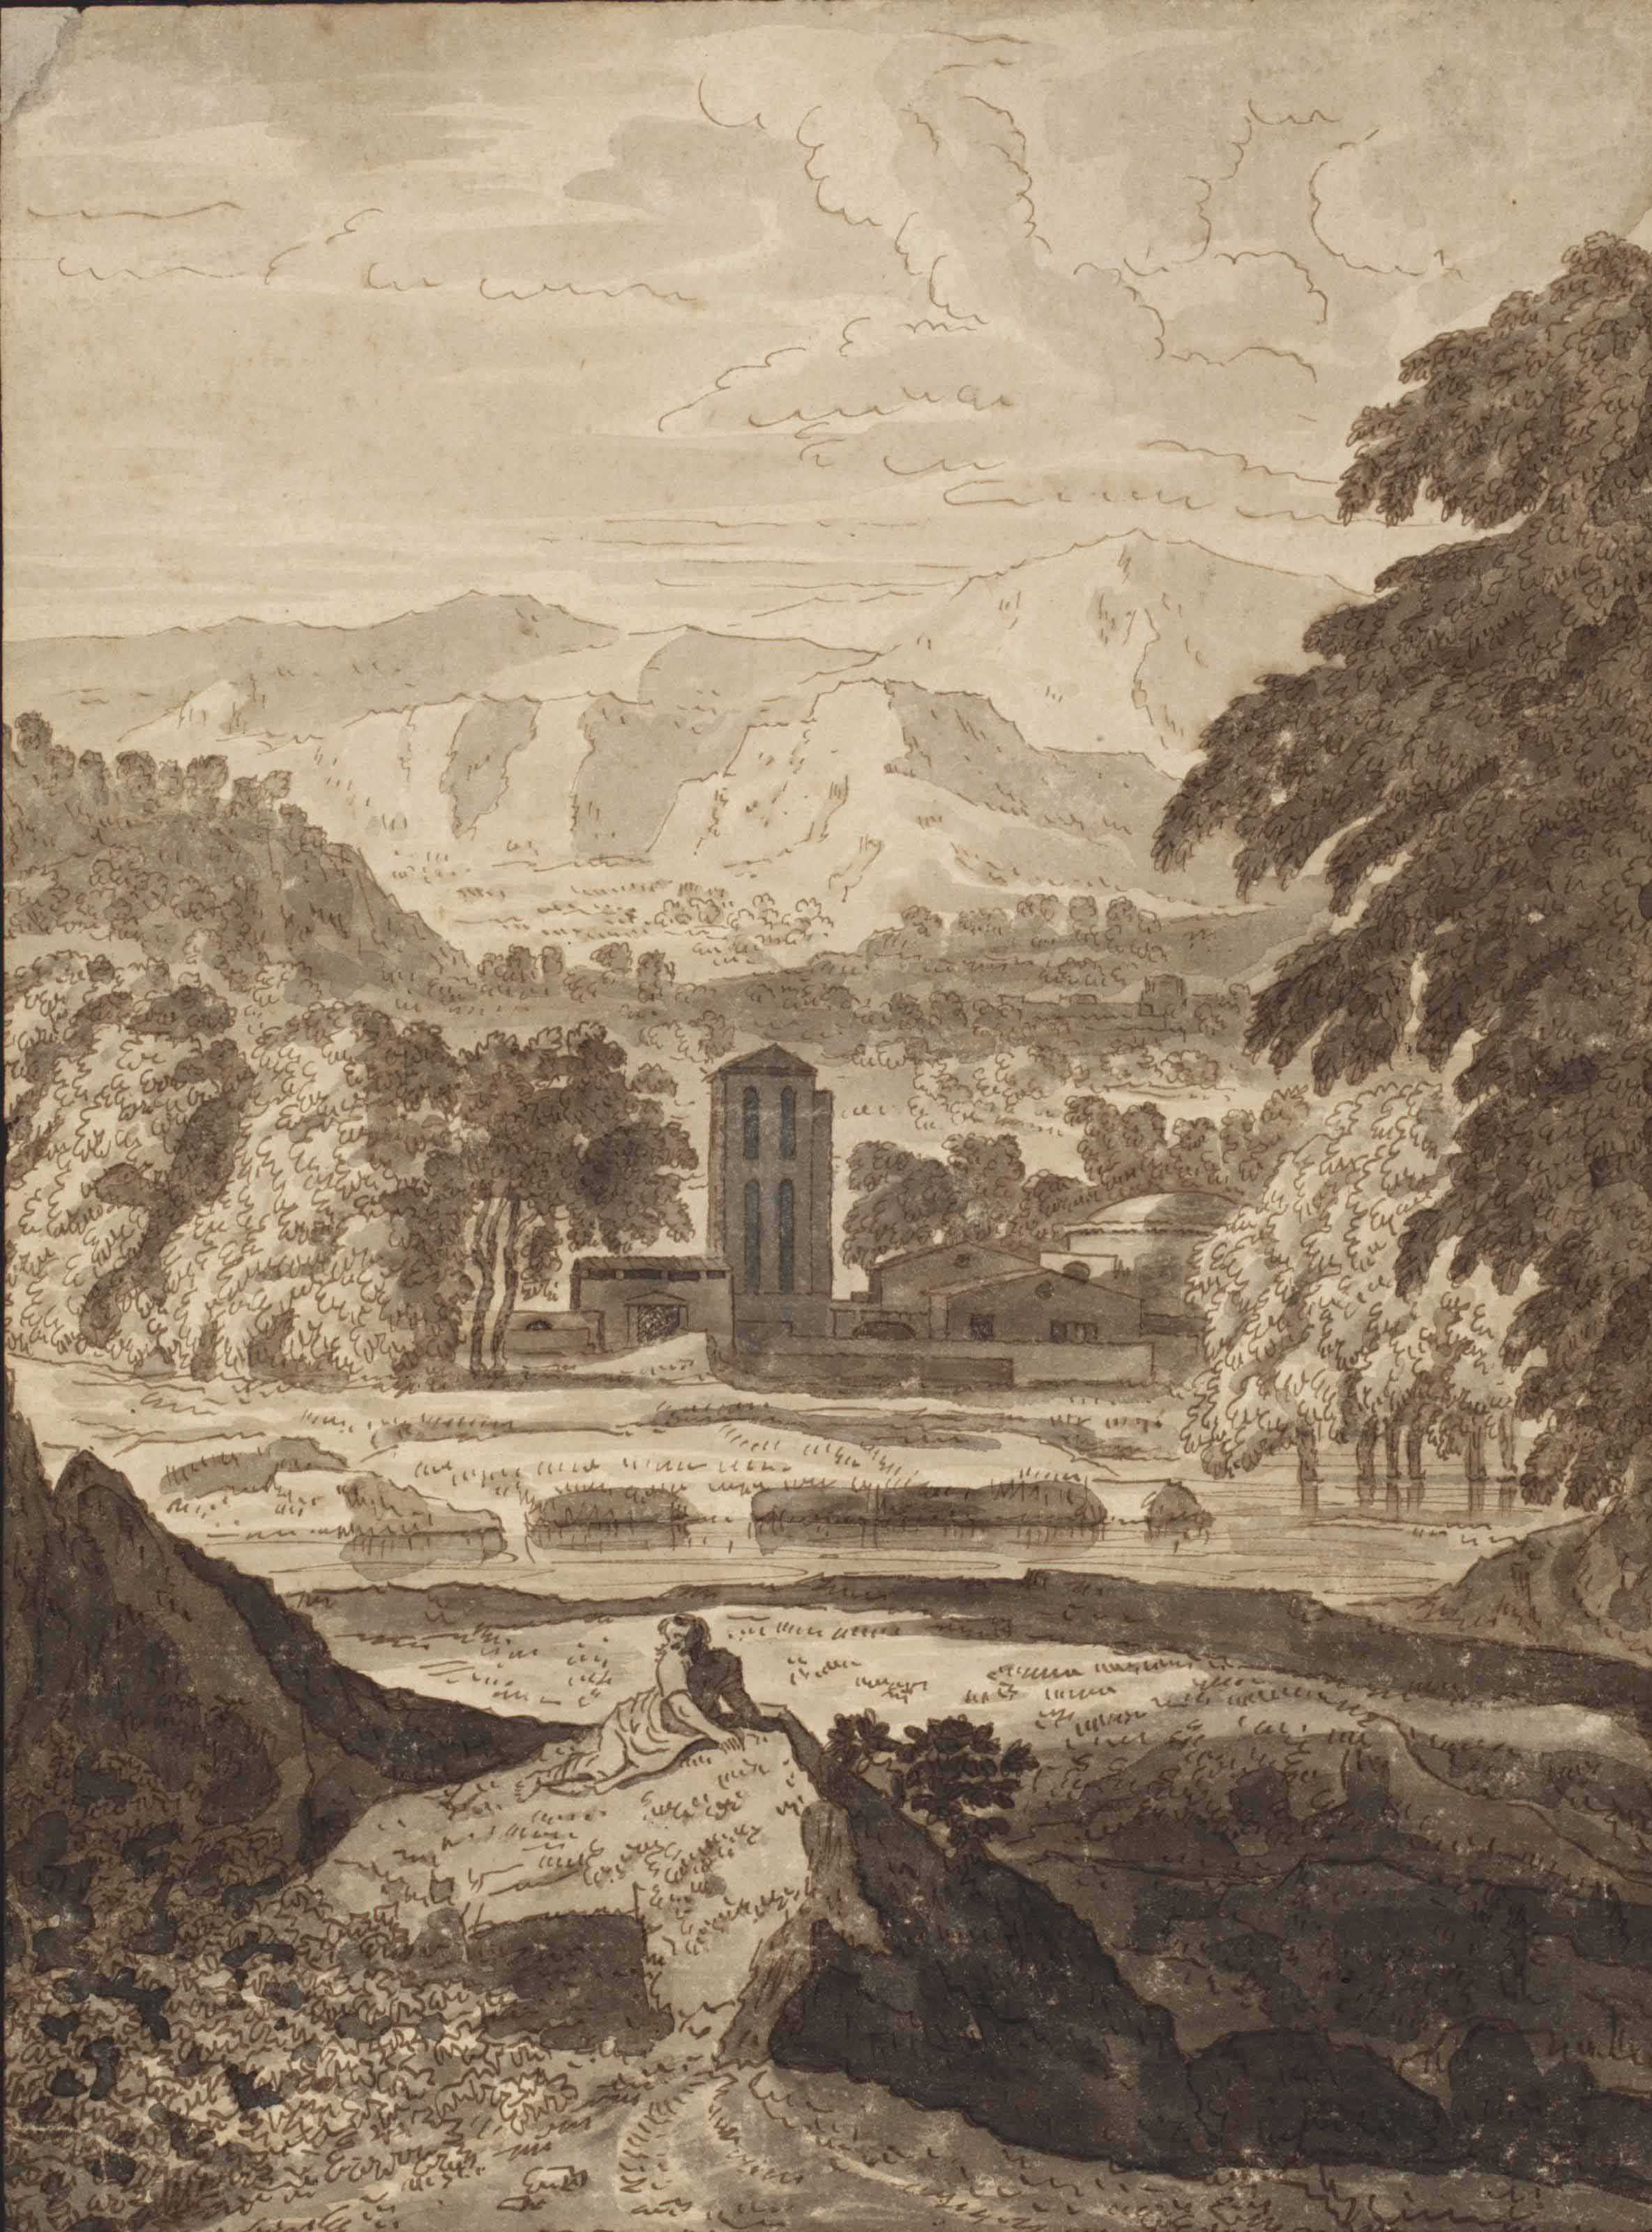 An Italianate landscape with buildings near a river and a figure seated on a rock in the foreground